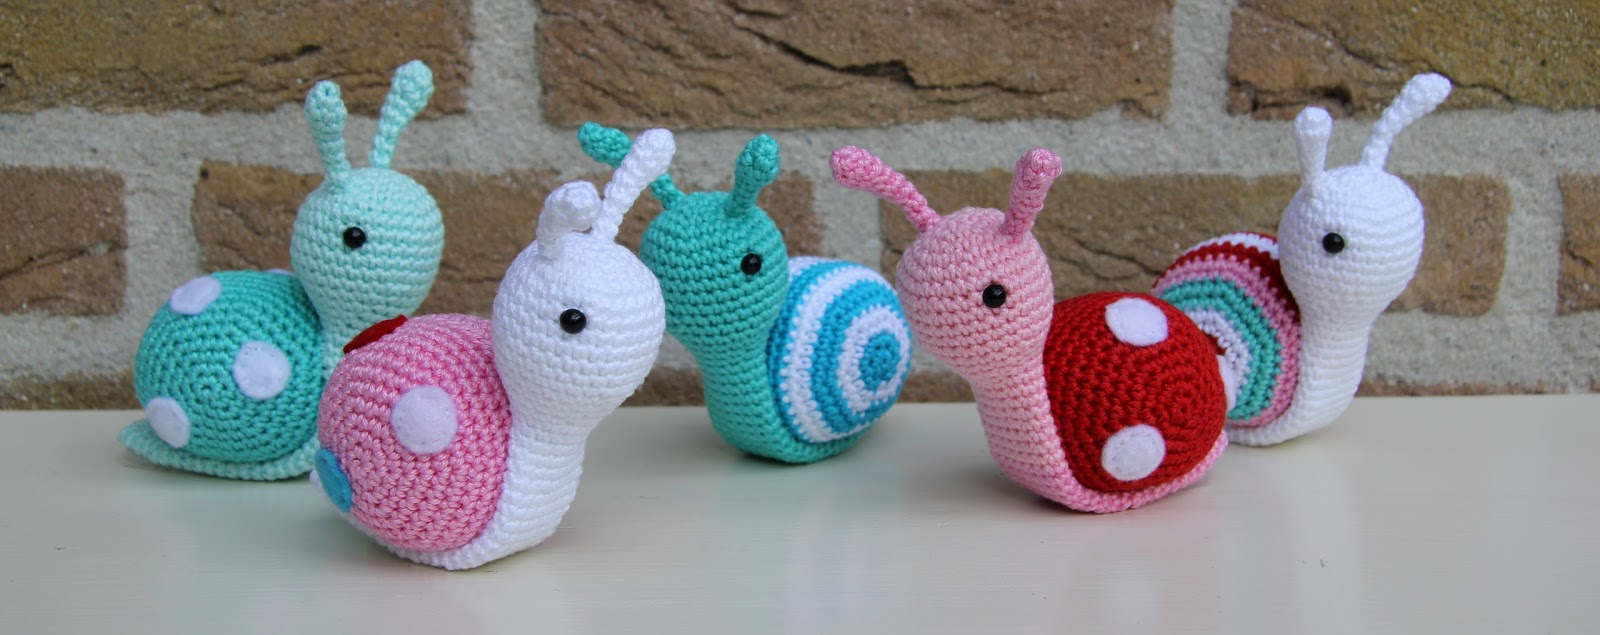 Amigurumi Tutorial Animali : Modele GRATIS-Amigurumi ESCARGOT Multicolore